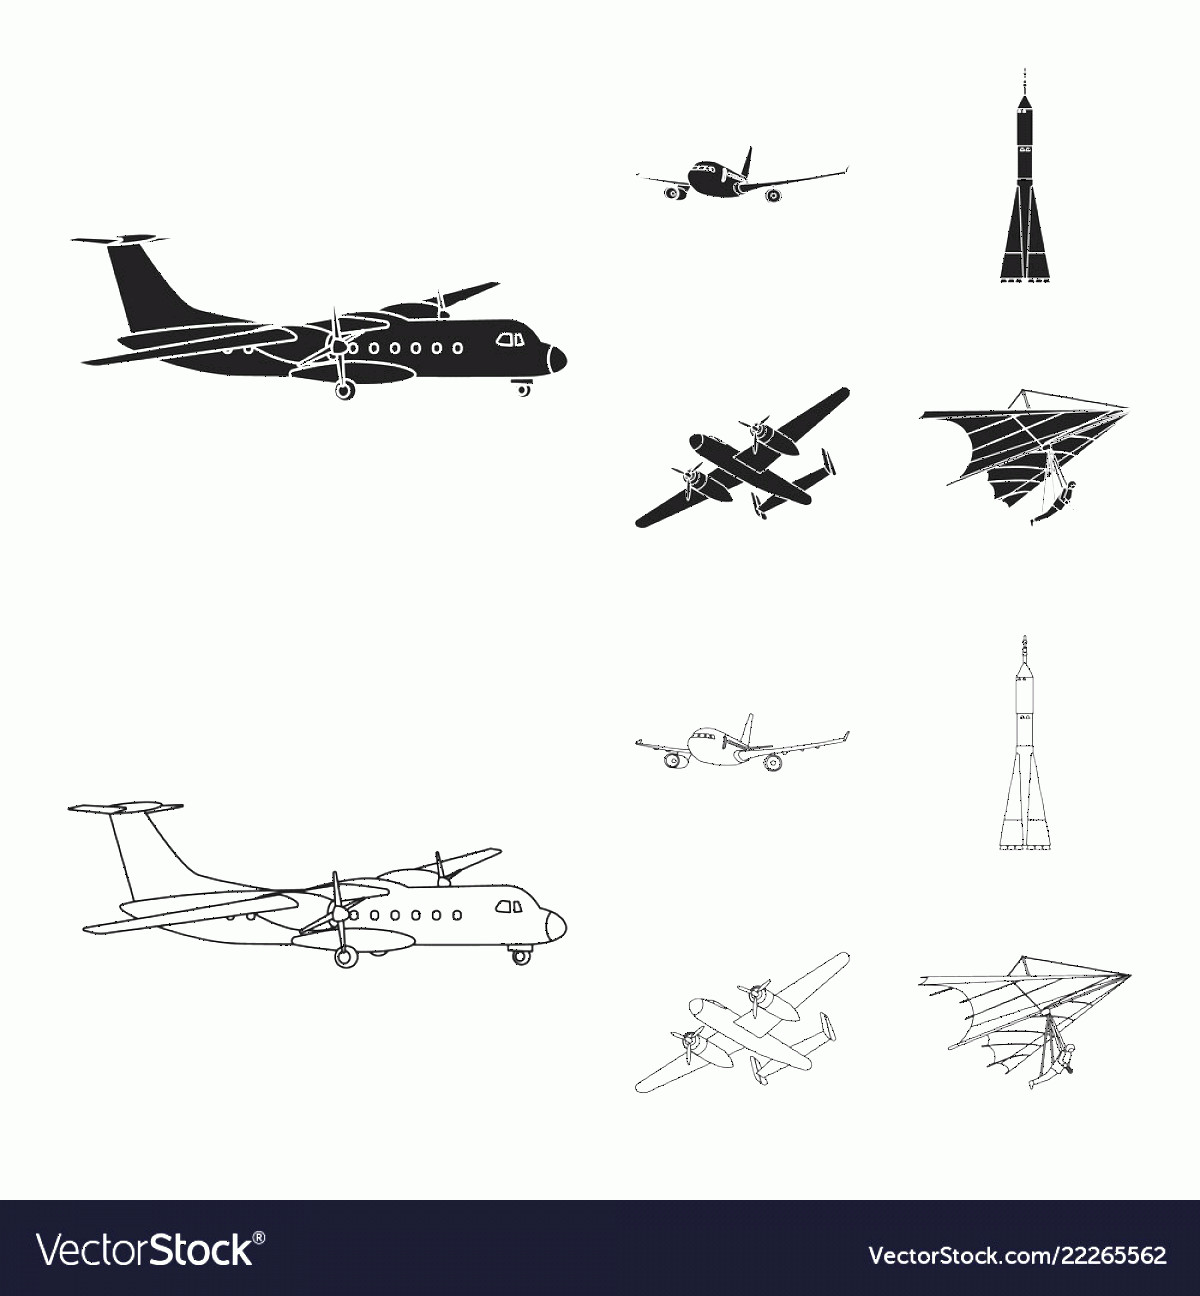 Aviation Vector Designs: Design Of Plane And Transport Logo Vector